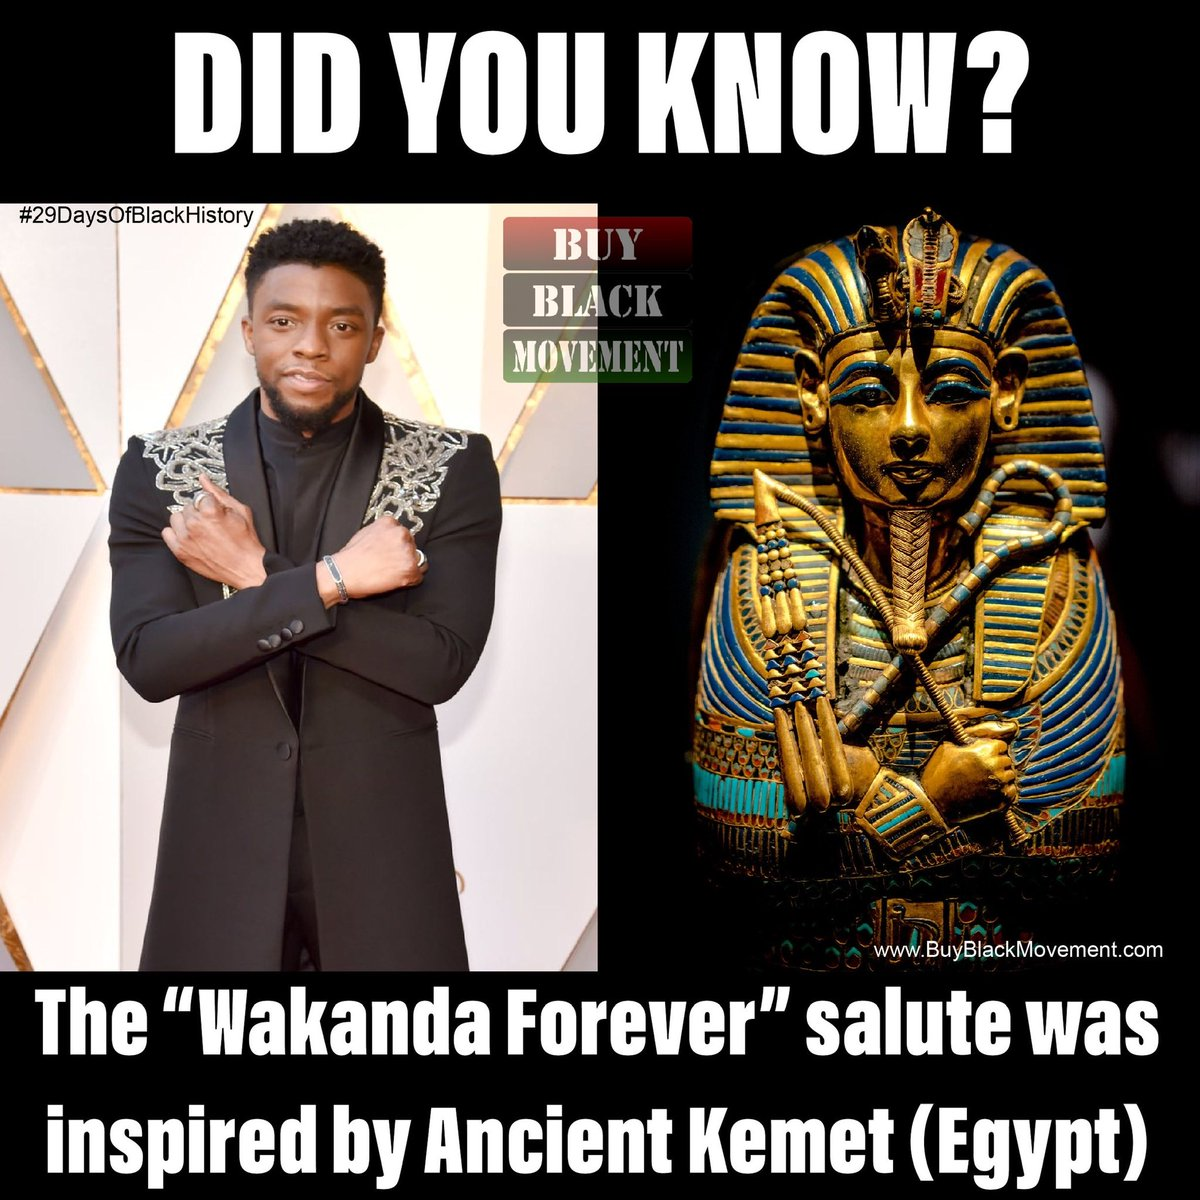 Wakanda Forever!!!!!!  Shop our Black History Sale @ http://www.BuyBlackMovement.com  Keep checking back for new Black history facts every day of February! Use #29DaysOfBlackHistoryBBM to find all of them!  #wakandaforever #buyblack #fortheculture #blackkings #blackpanther #wakandapic.twitter.com/7sx7veELhh